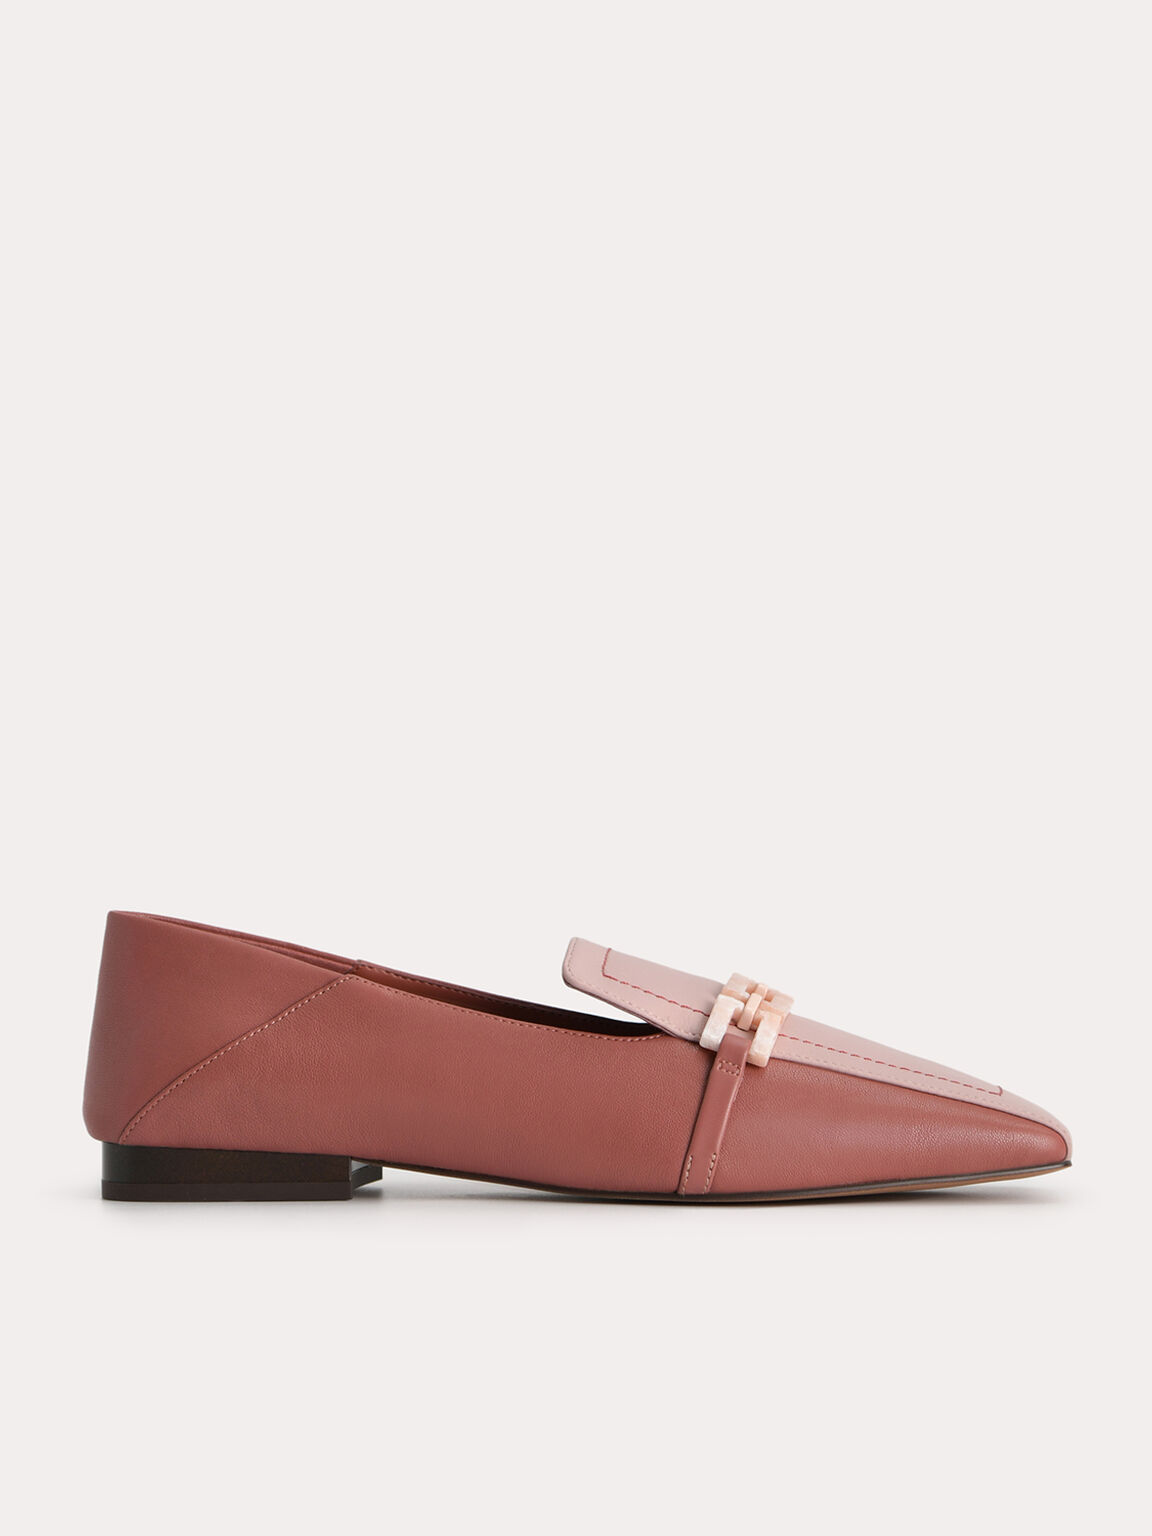 Leather Square Toe Loafers, Walnut, hi-res